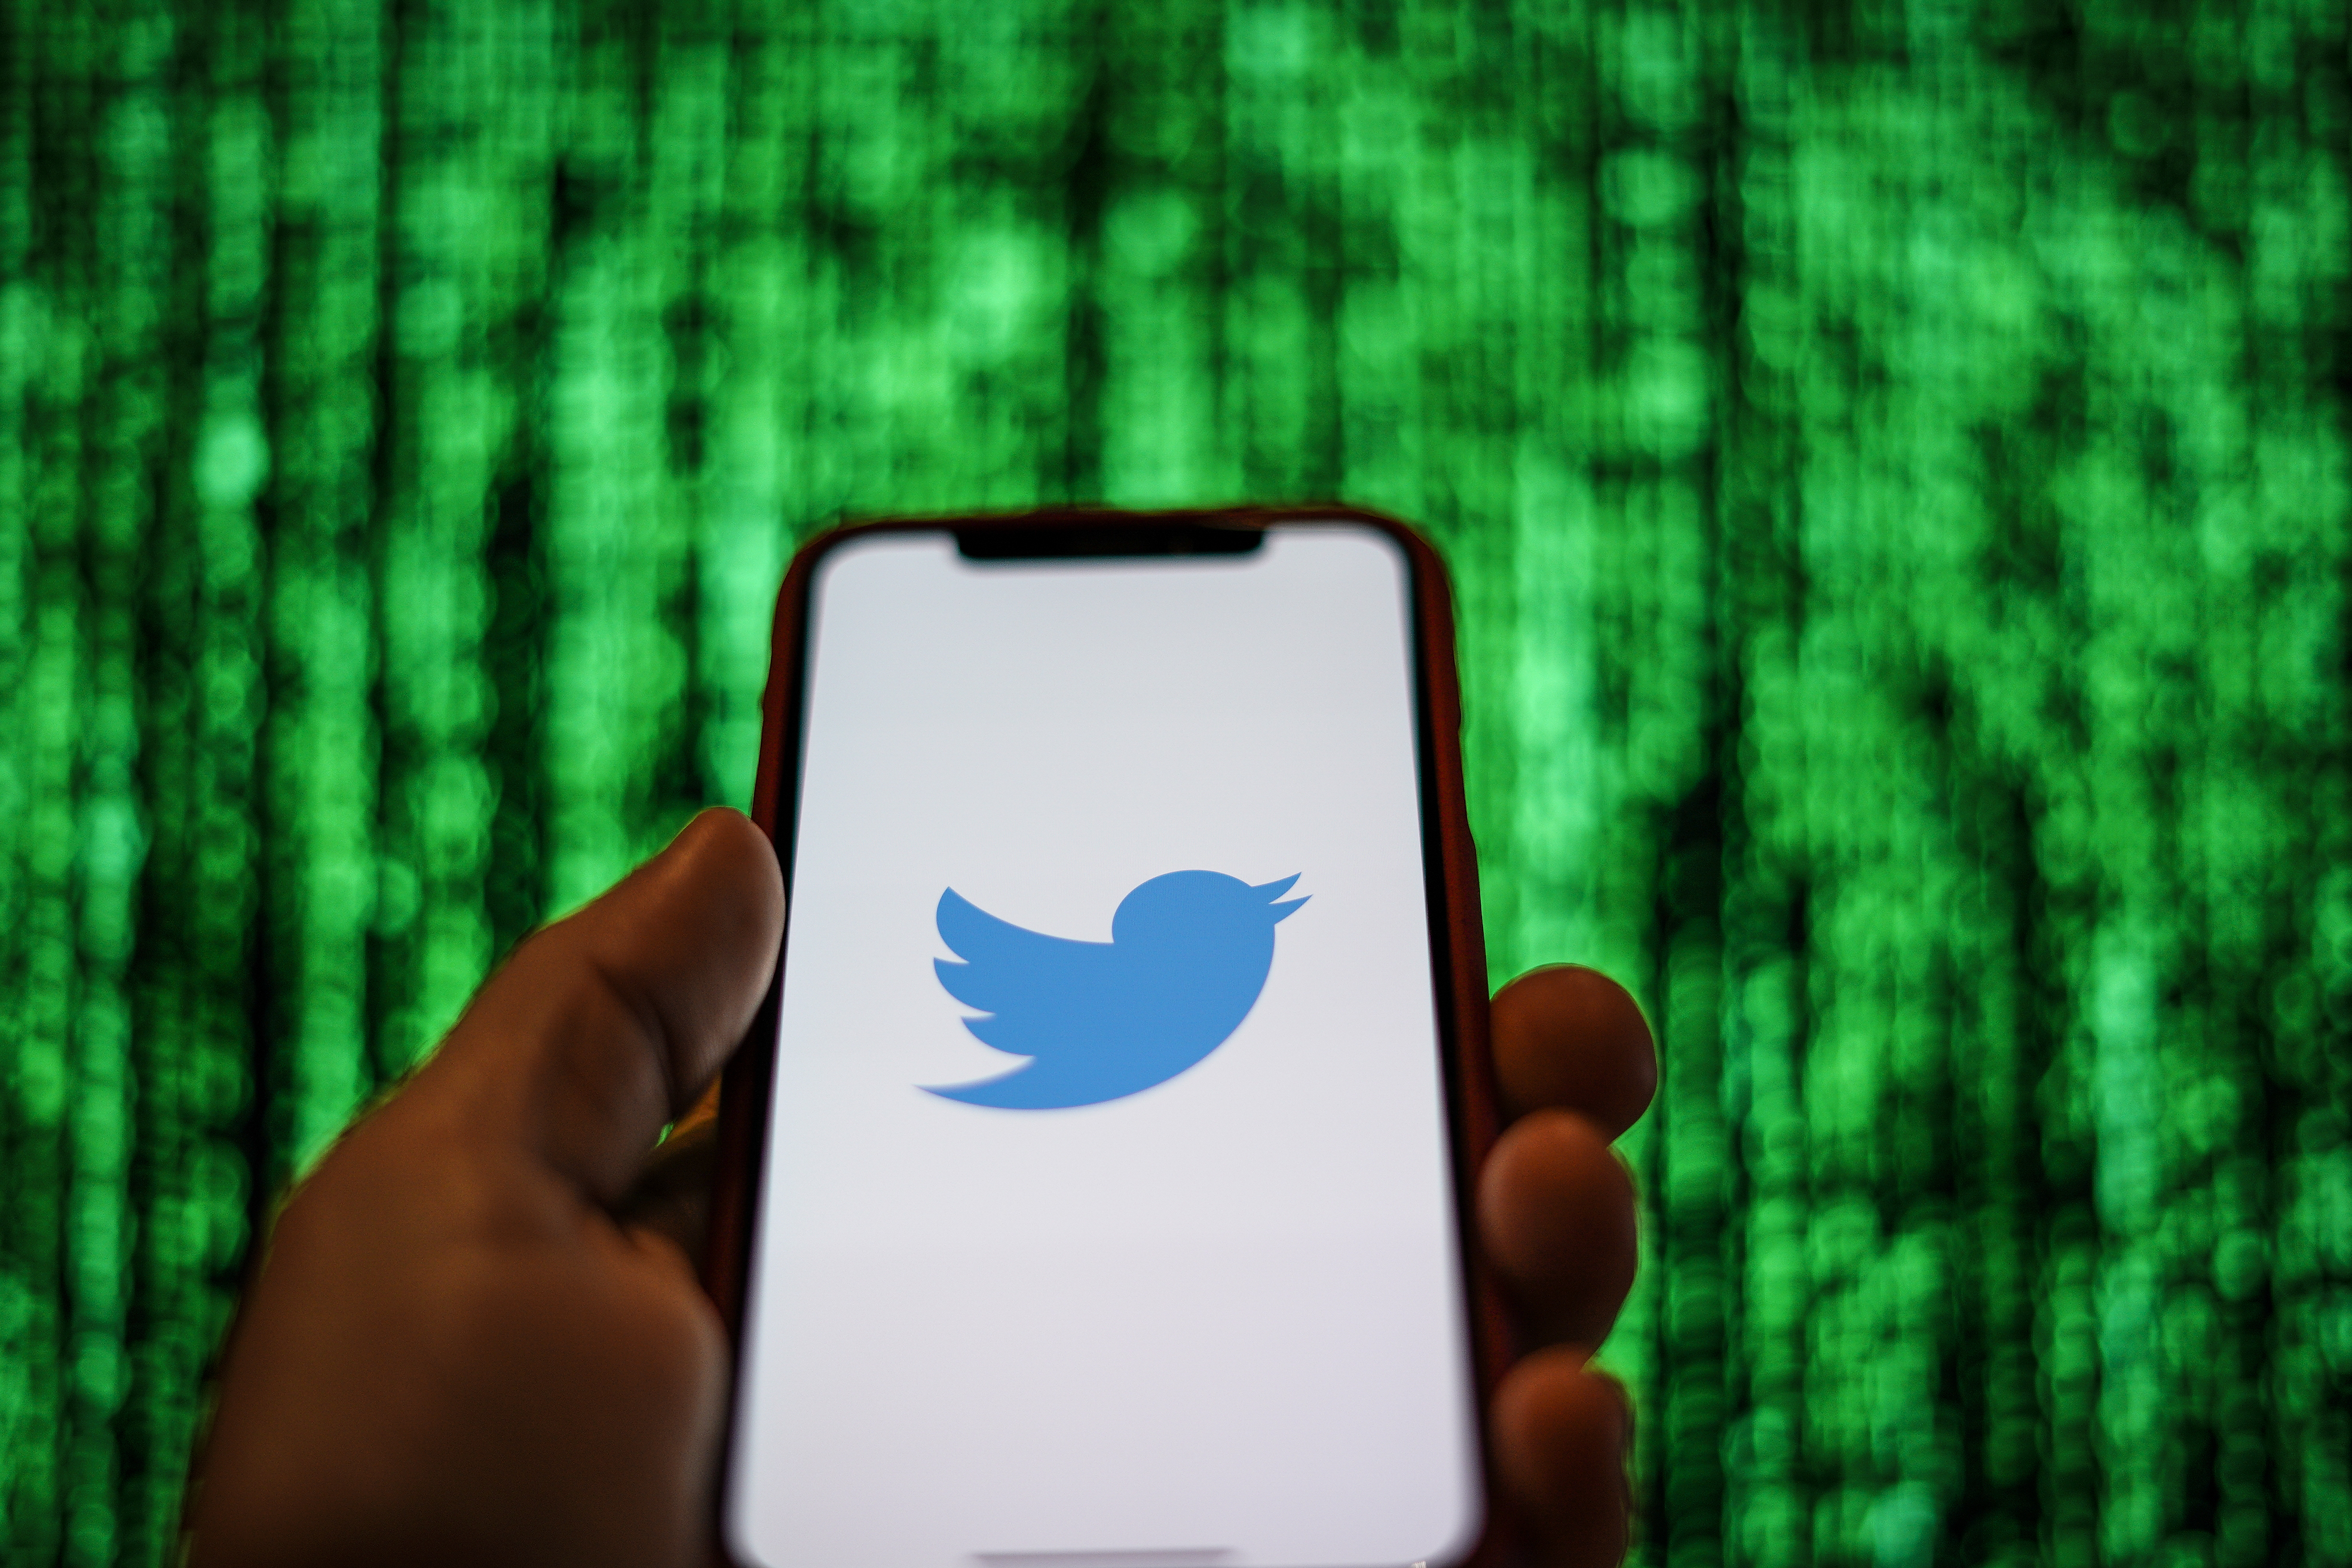 The Twitter logo is seen displayed on a mobile device in front of a screen with data in this photo illustration in Warsaw, Poland on March 19, 2019. (Photo by Jaap Arriens/NurPhoto via Getty Images)